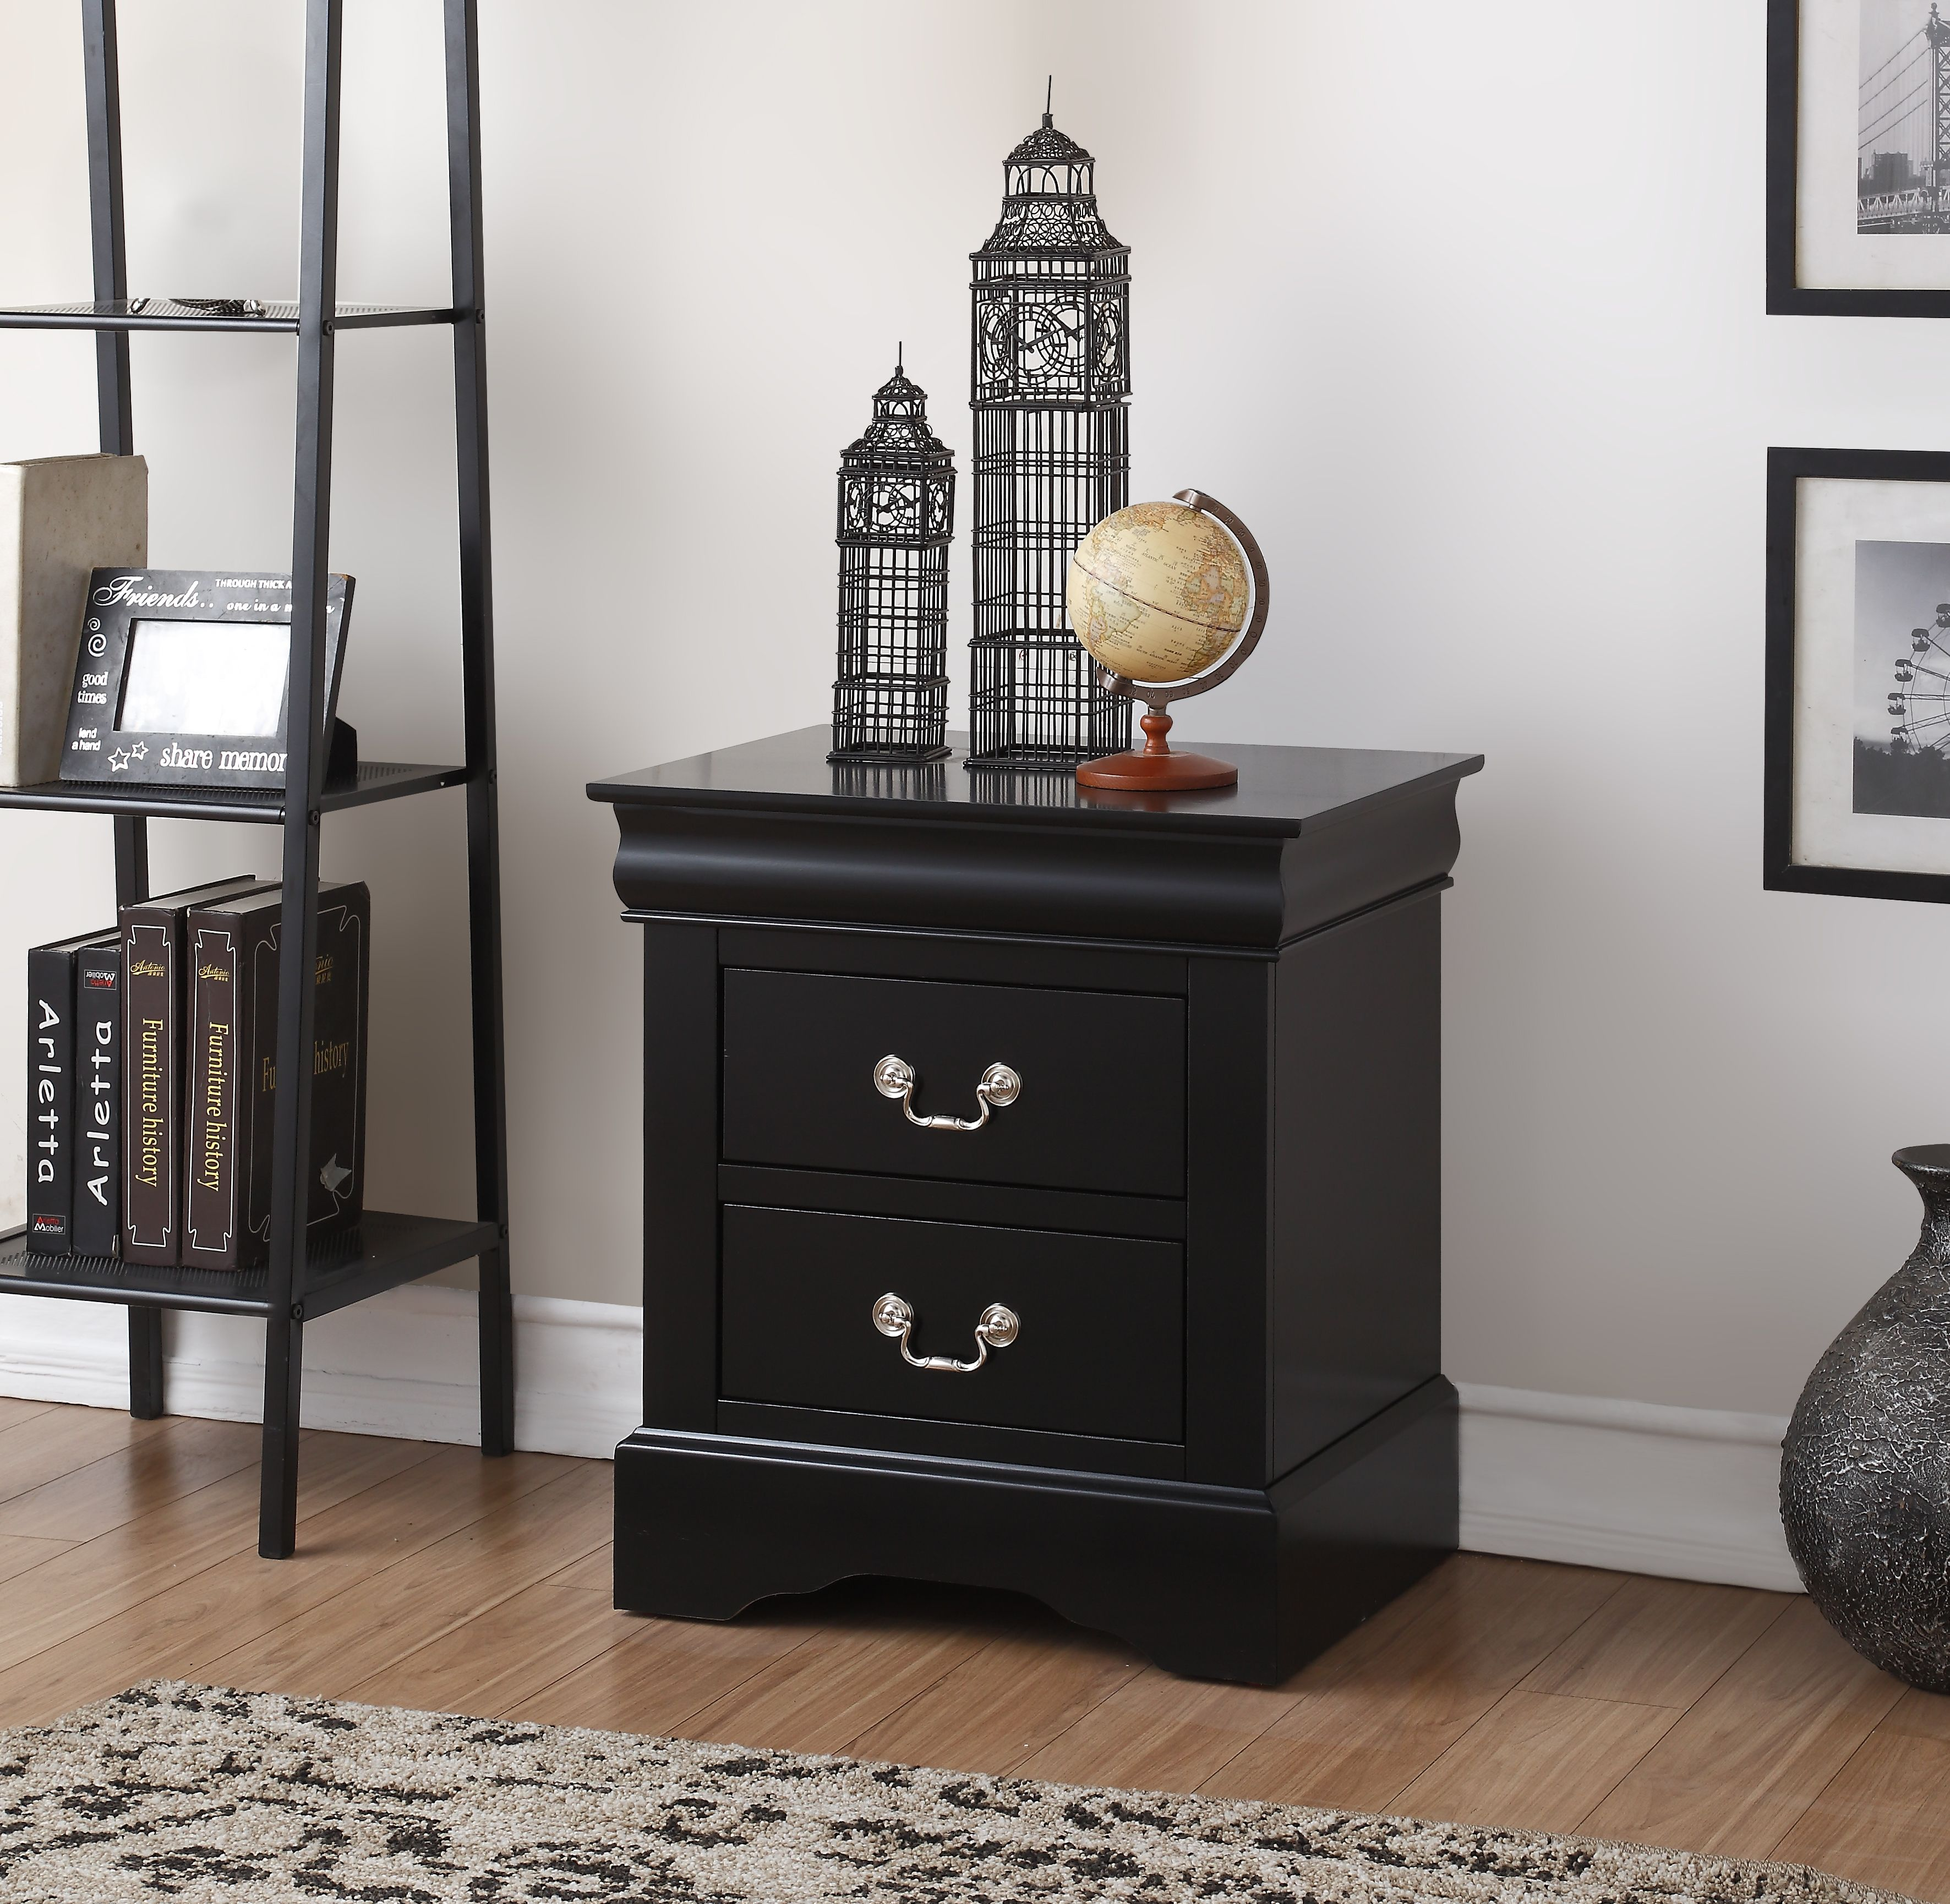 Acme Furniture Louis Phillipe III 2-Drawer Nightstand, Multiple Finishes